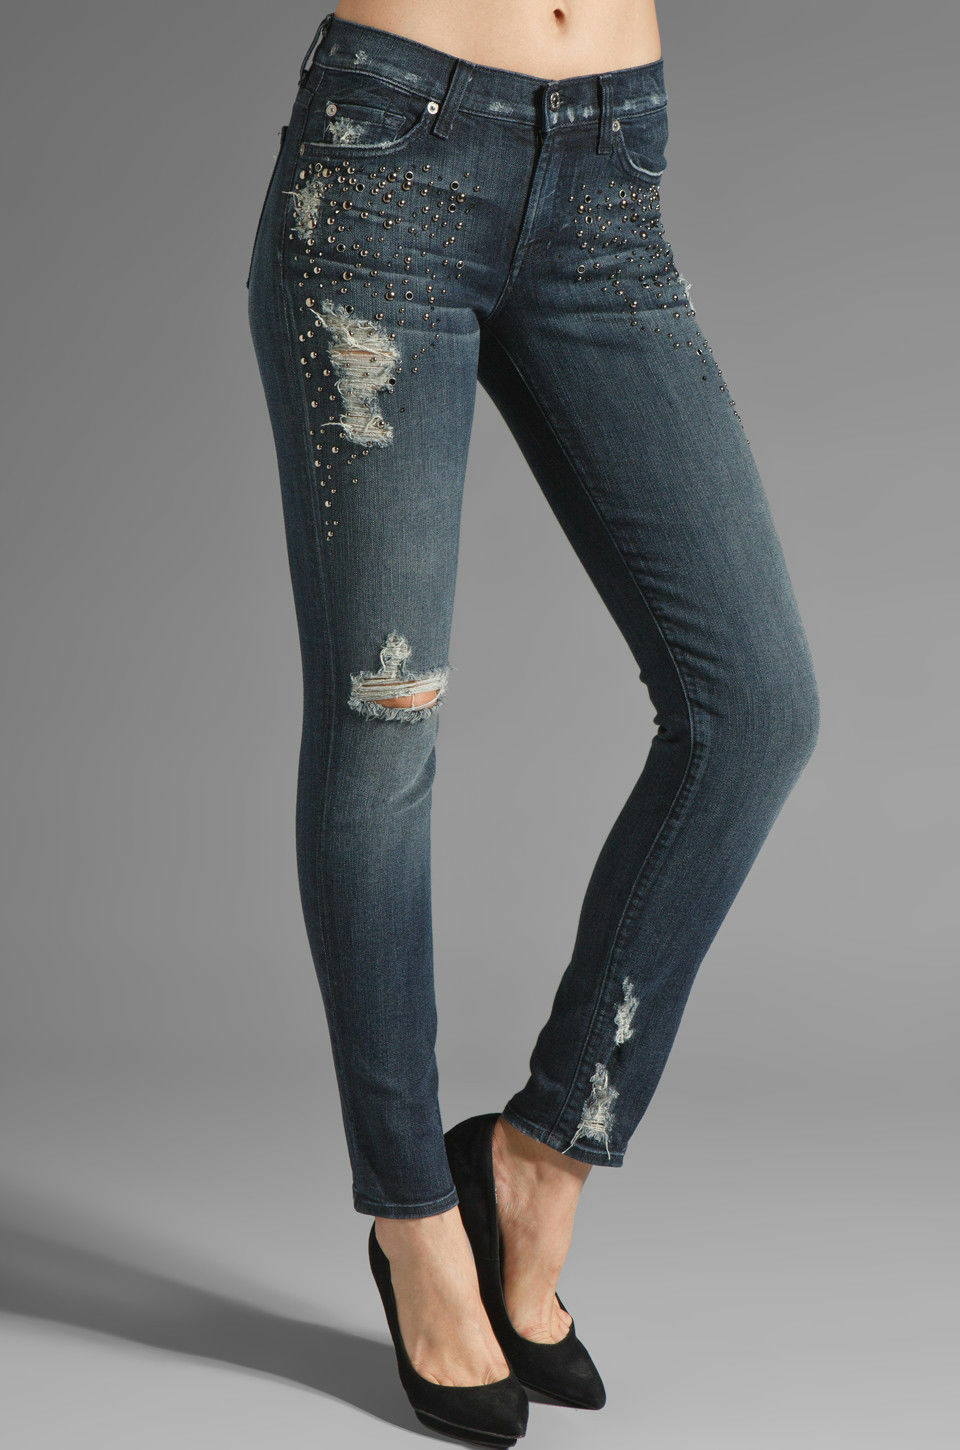 3077dd05032227 7 For Mankind Women's The slim cigarette Jean crystals, Grey Tint SZ 26  with All pezovh4567-Jeans